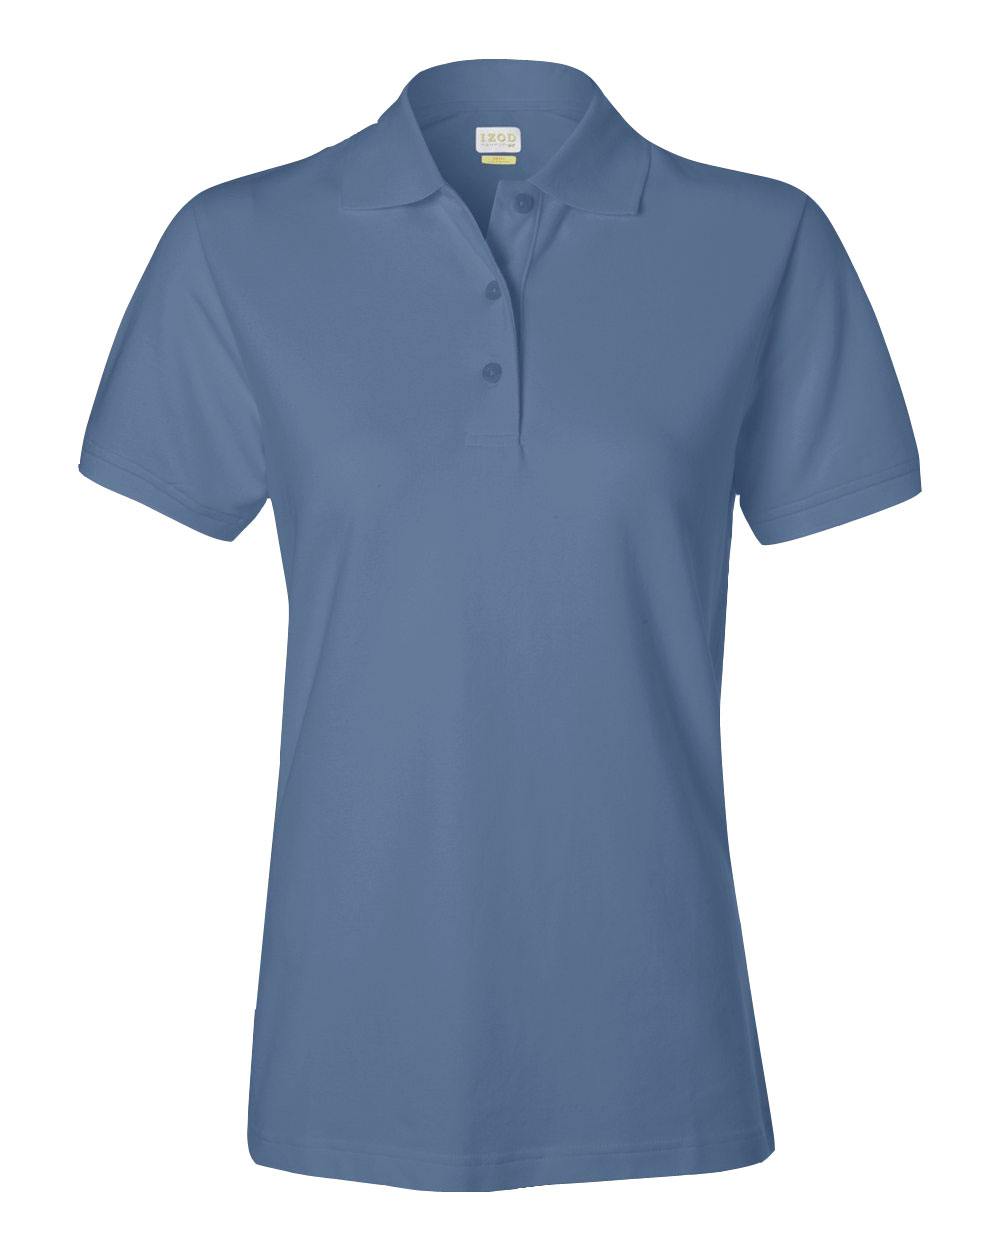 Izod Ladies Classic Silk-Washed Pique Polo